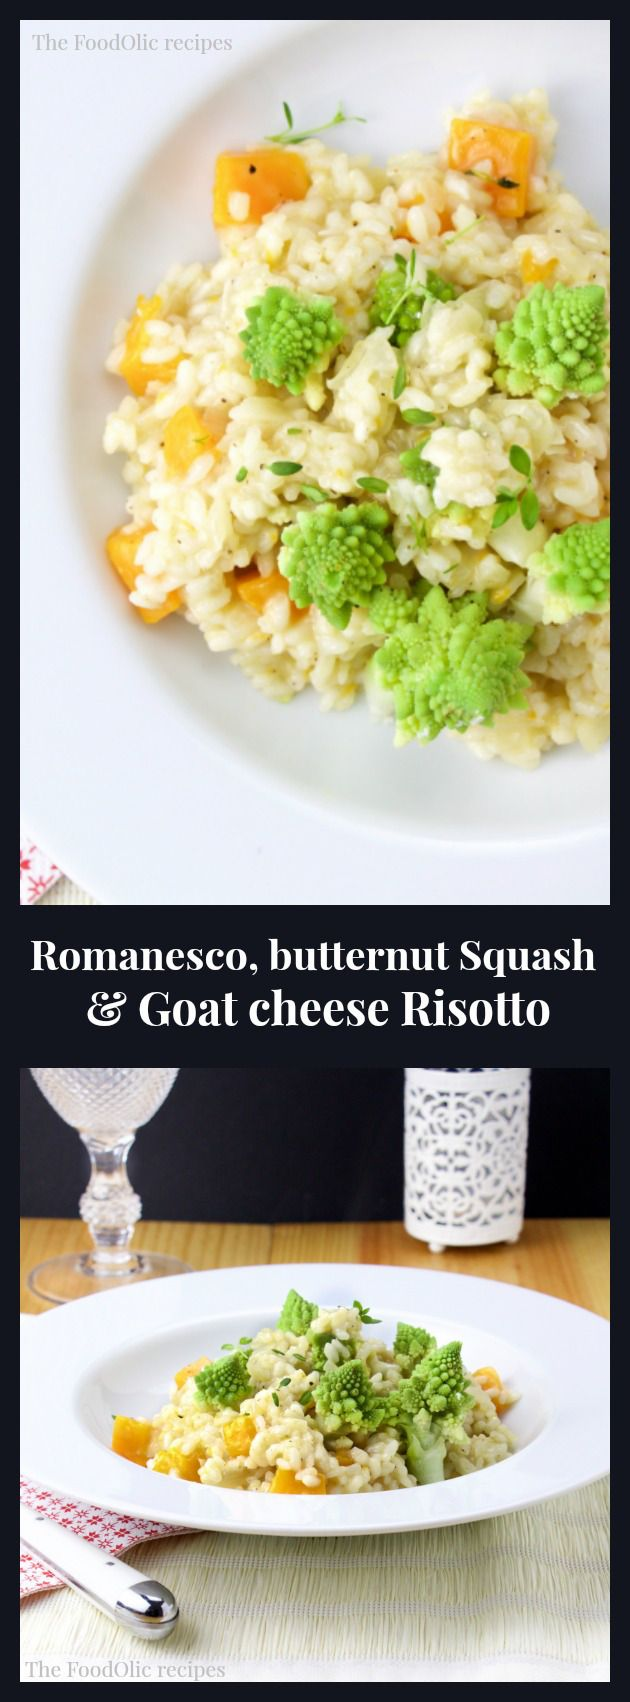 A delicate vegetarian dish, filled with vitamins and resembling a mountain of little pine trees, just in time for the holidays. A risotto with romanesco broccoli, goat cheese and butternut squash with a splash of white wine and fresh thyme. #risotto #romanesco #goatcheese